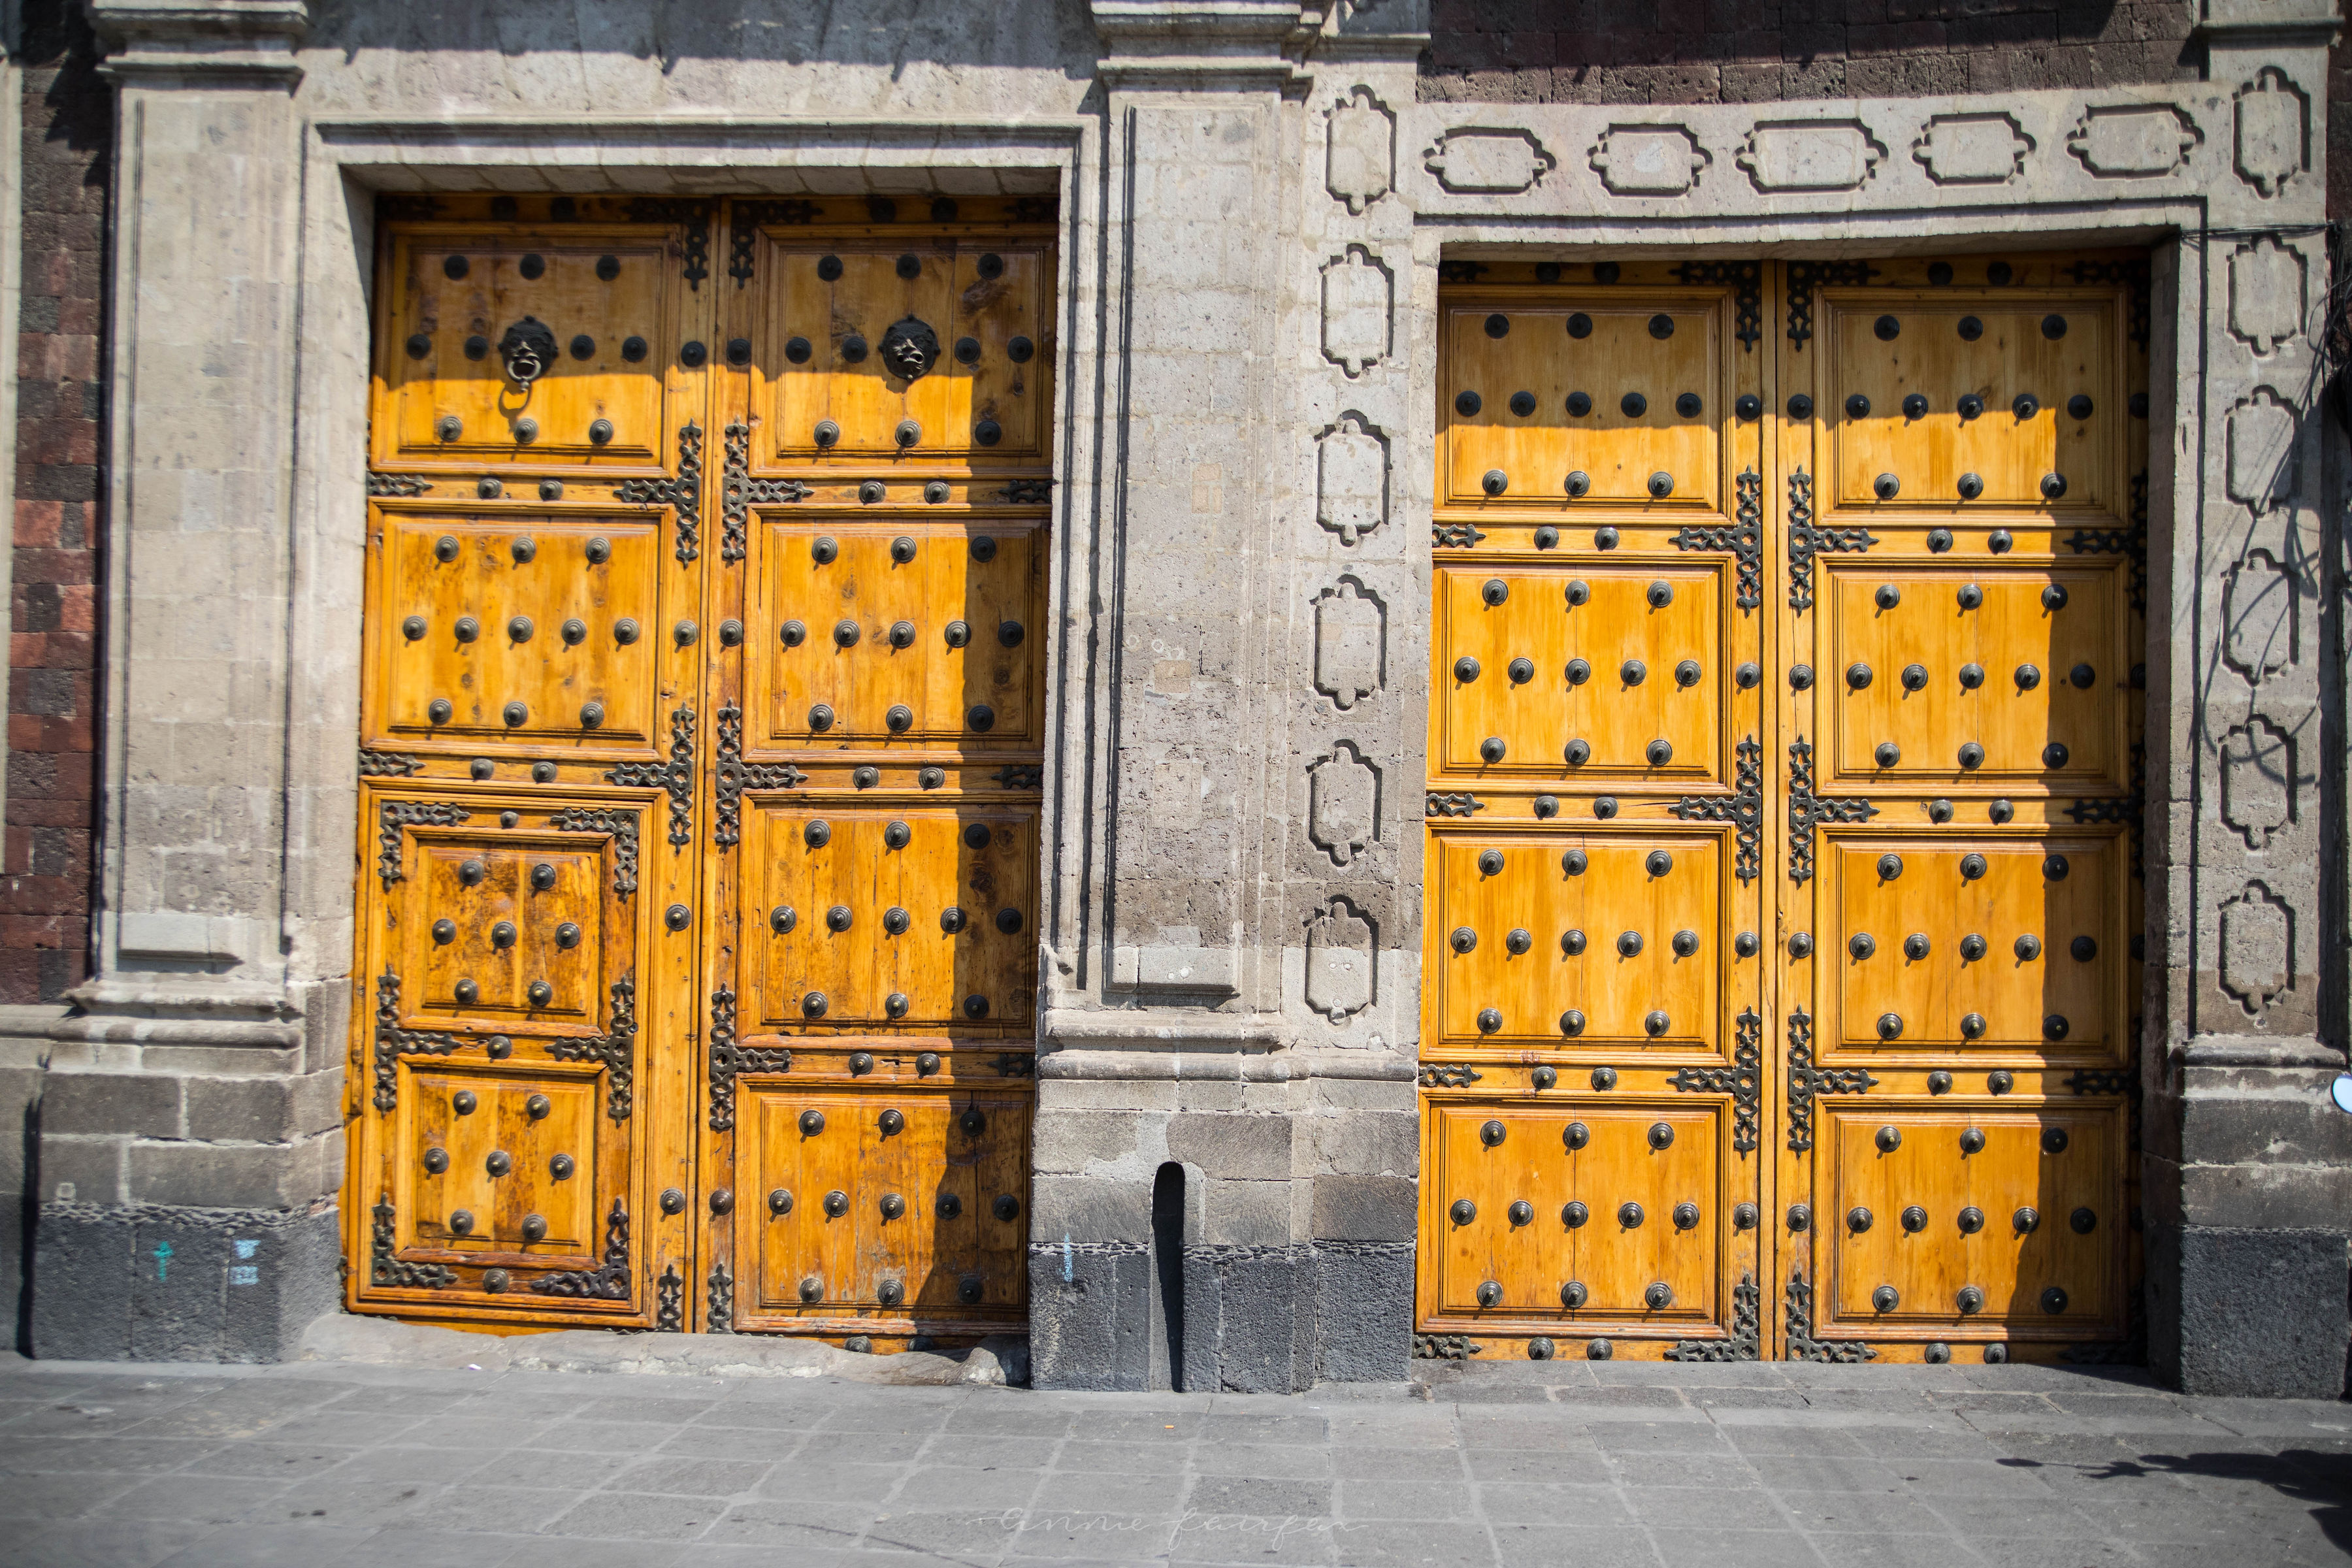 Yellow Doors The Complete Traveler's Guide to Mexico City Mexico Where to Stay What to Eat Where to Visit What to Do Places to Avoid How to Stay Safe in Mexico City